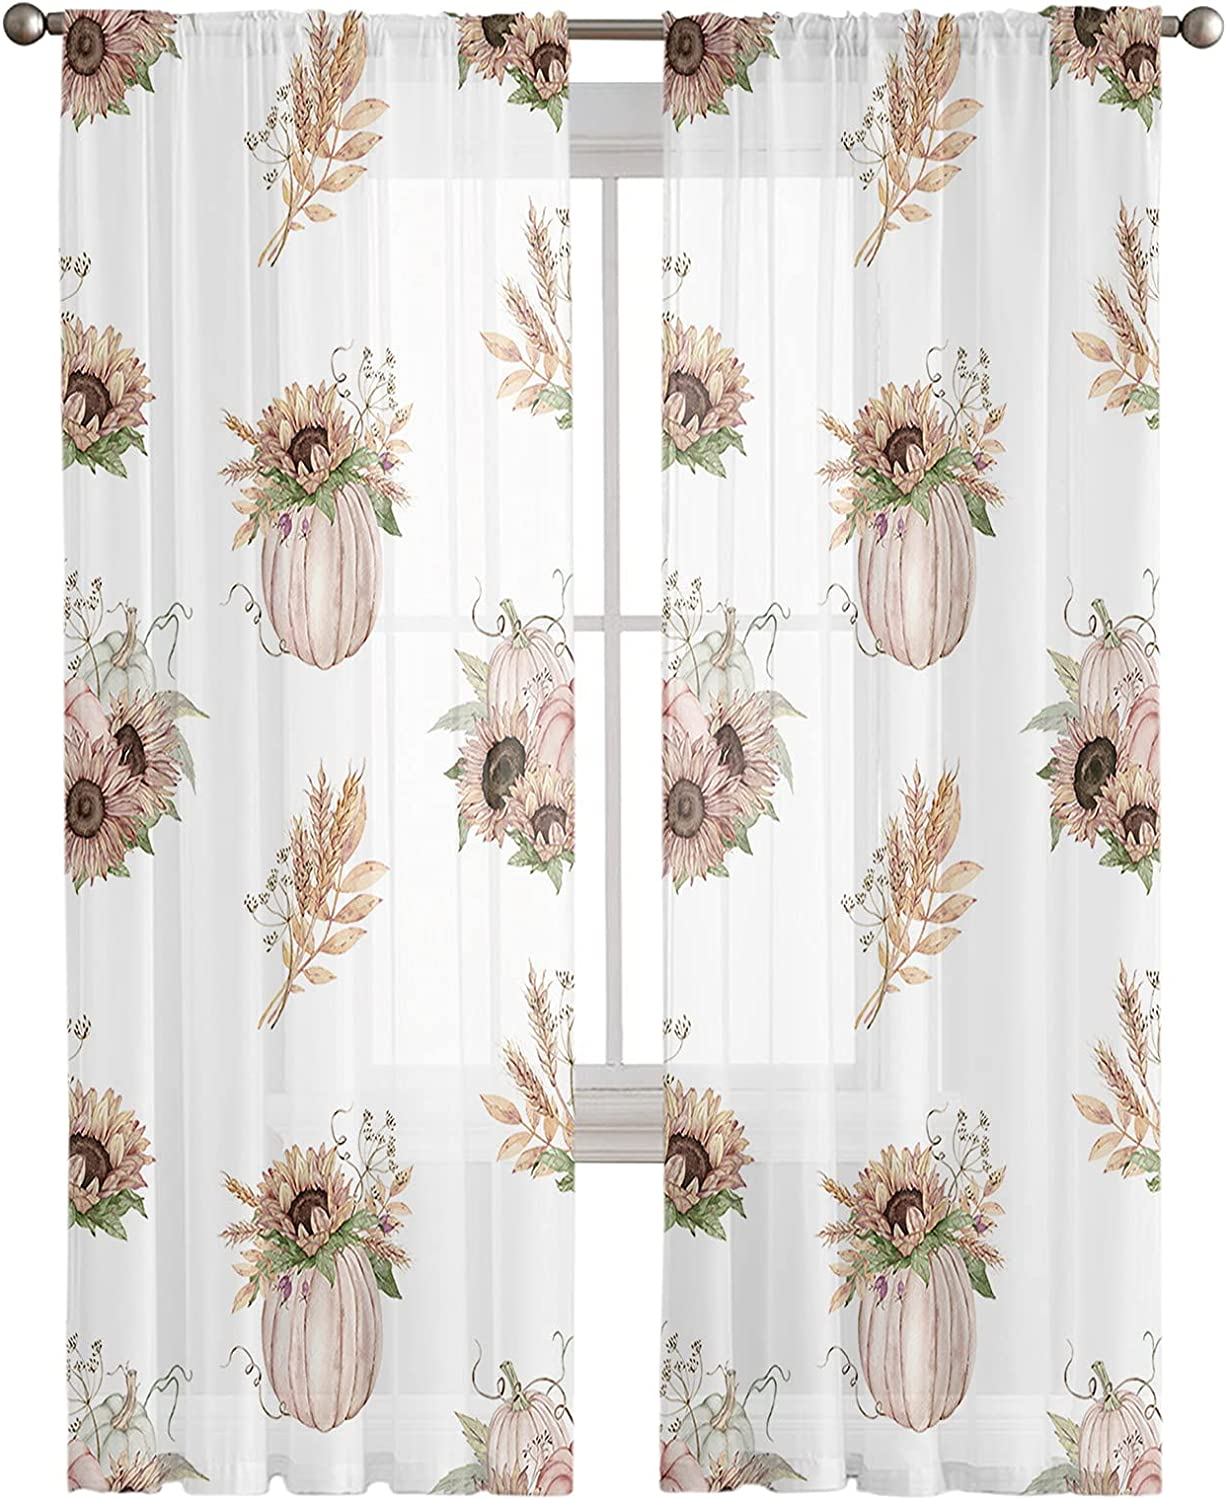 In stock Semi Dealing full price reduction Sheer Curtains 2 Treatments Window Panels Privacy